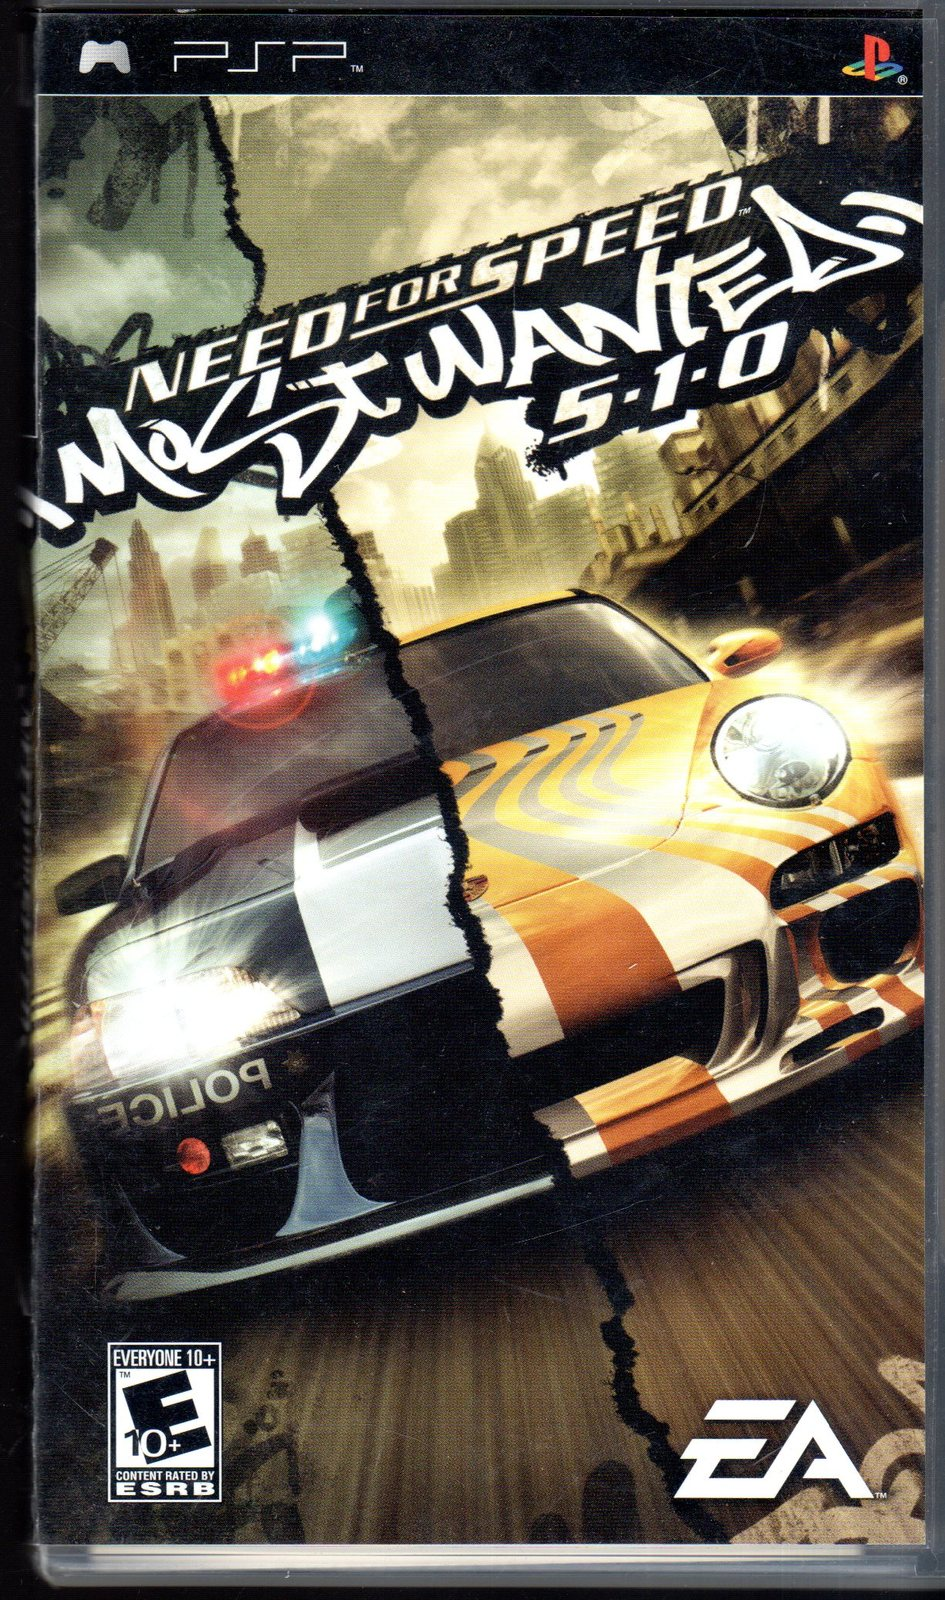 Primary image for Need for Speed Most Wanted 5-1-0  [Playstation Portable (PSP)]